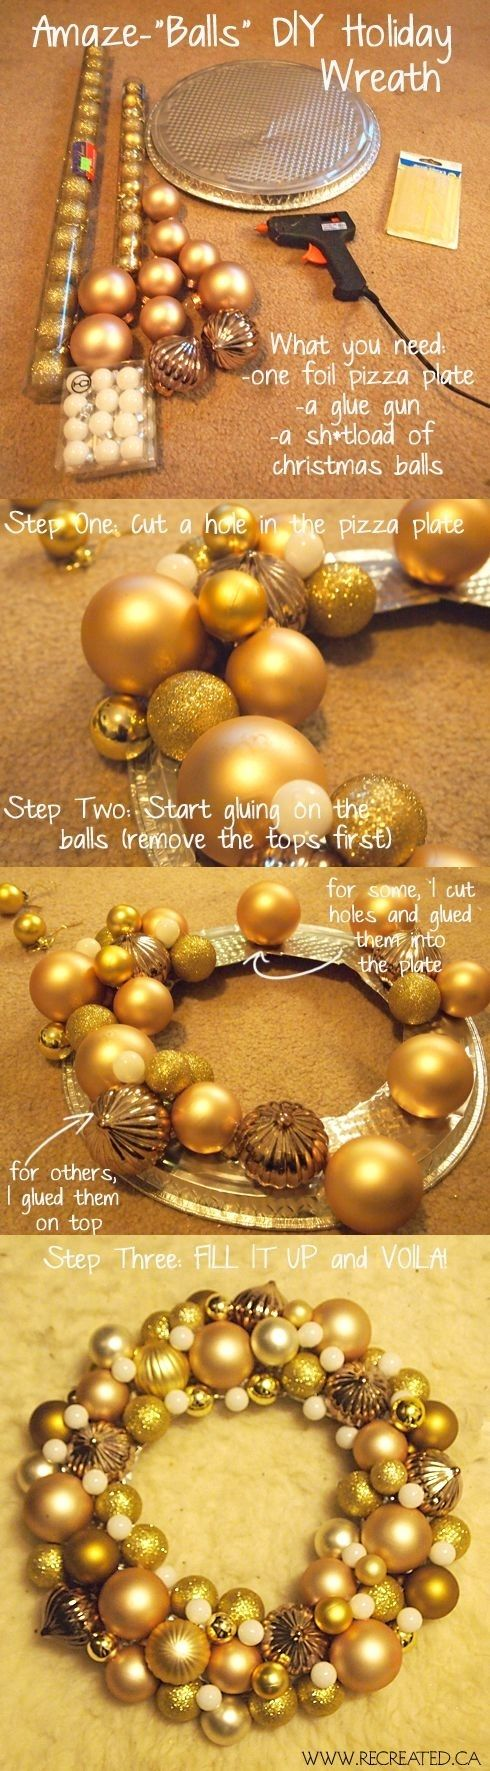 DIY Holiday Wreath | 12 Jolly Christmas Hacks To Save Time And Money